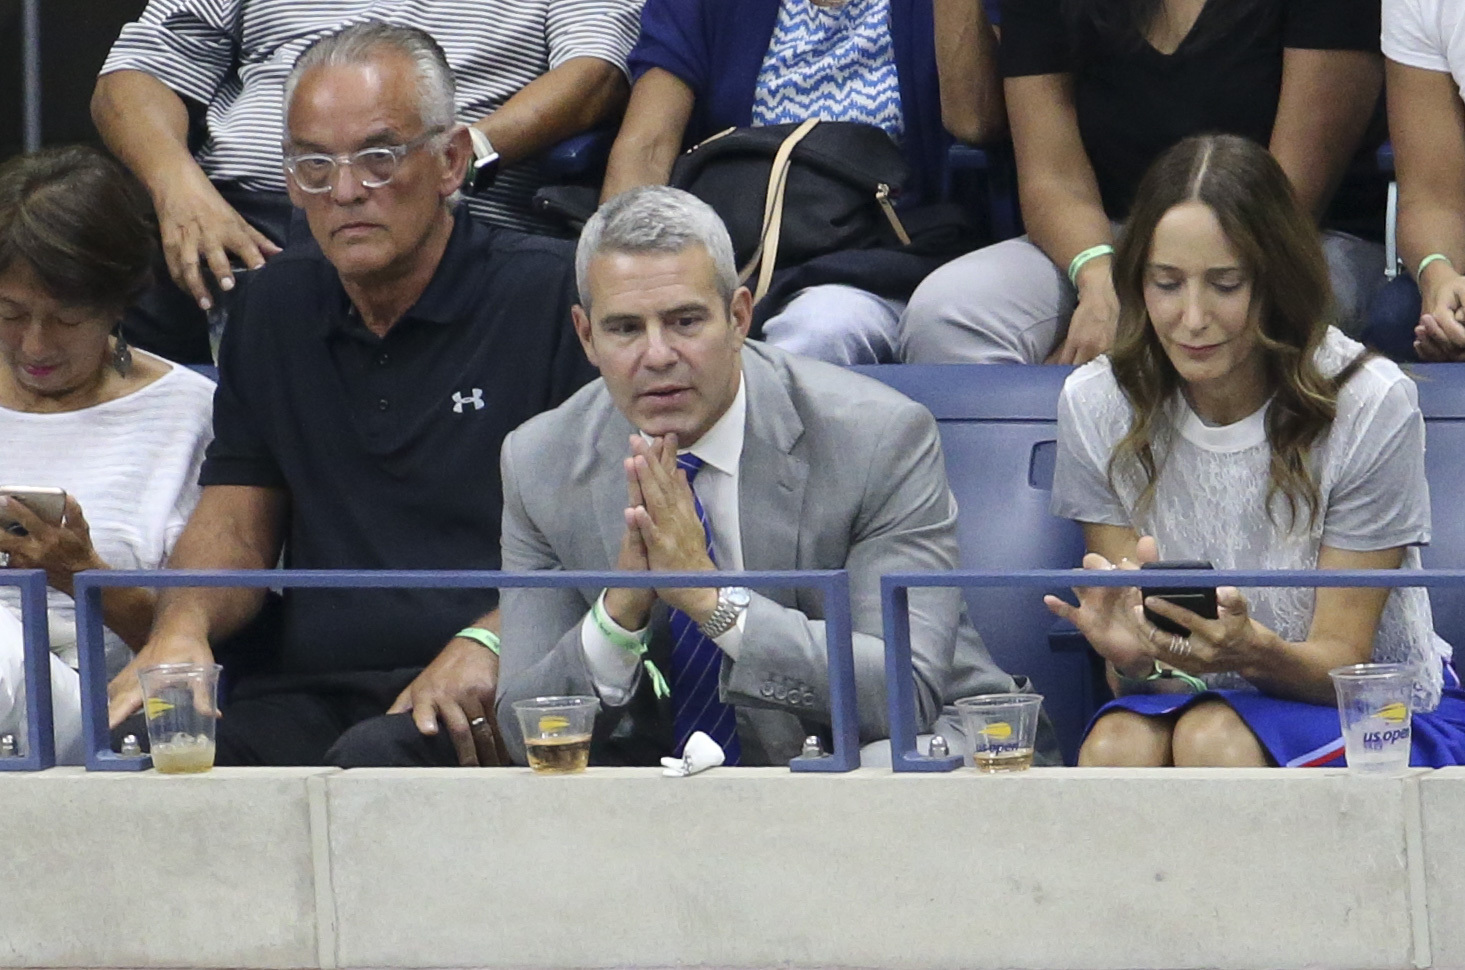 Andy Cohen attends the women's final on day 13 of the U.S. Open Tennis Championships in Flushing, New York, on Sept. 8, 2018.